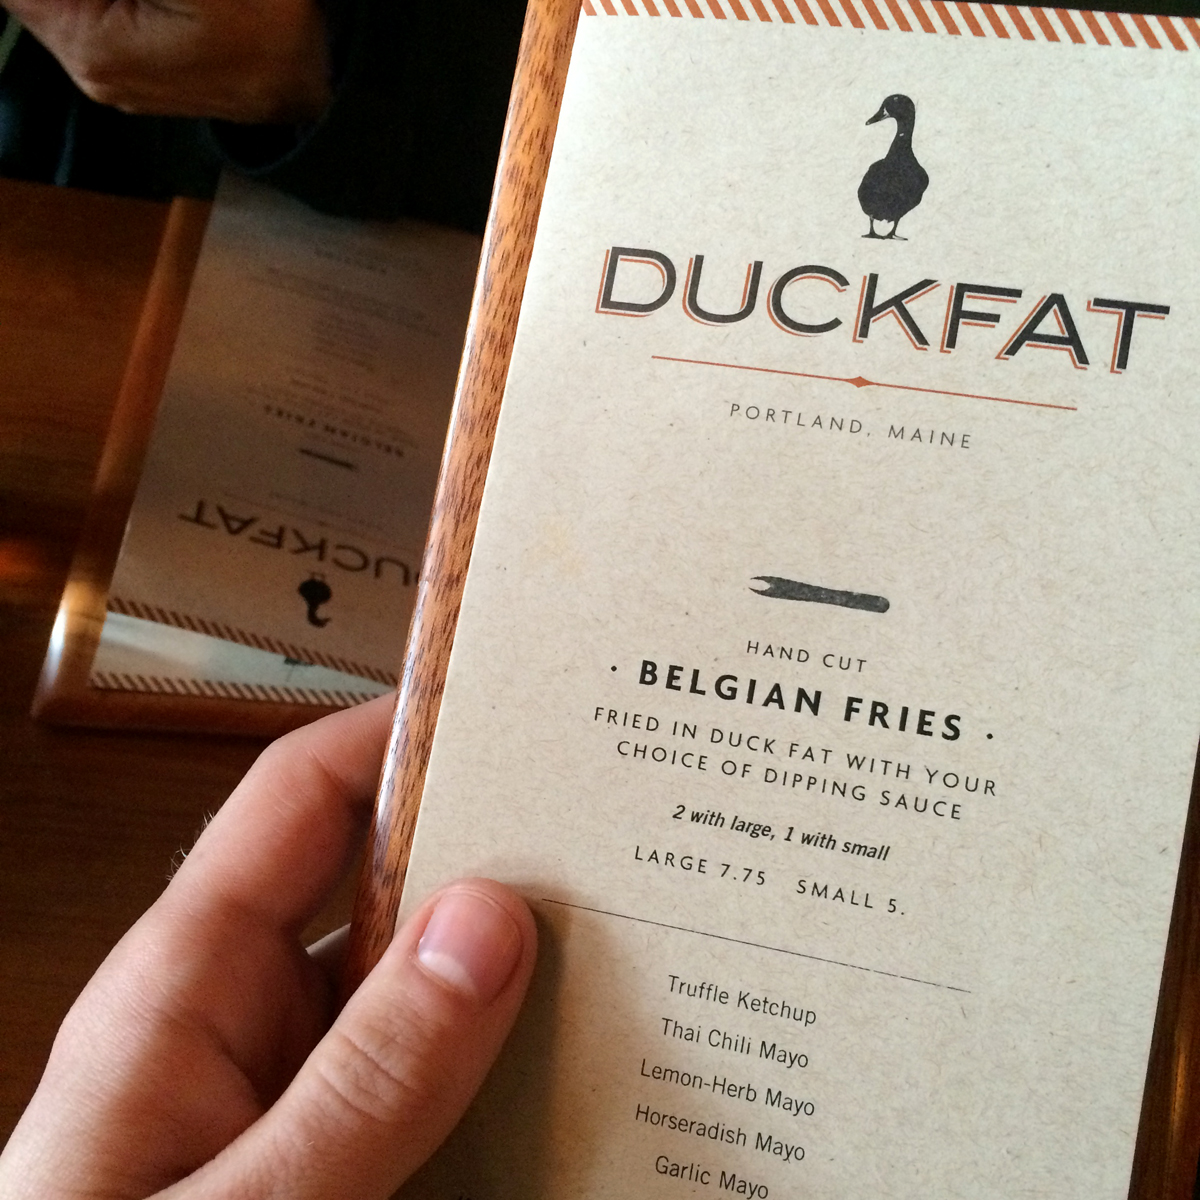 chicago travel blog duckfat portland maine 5